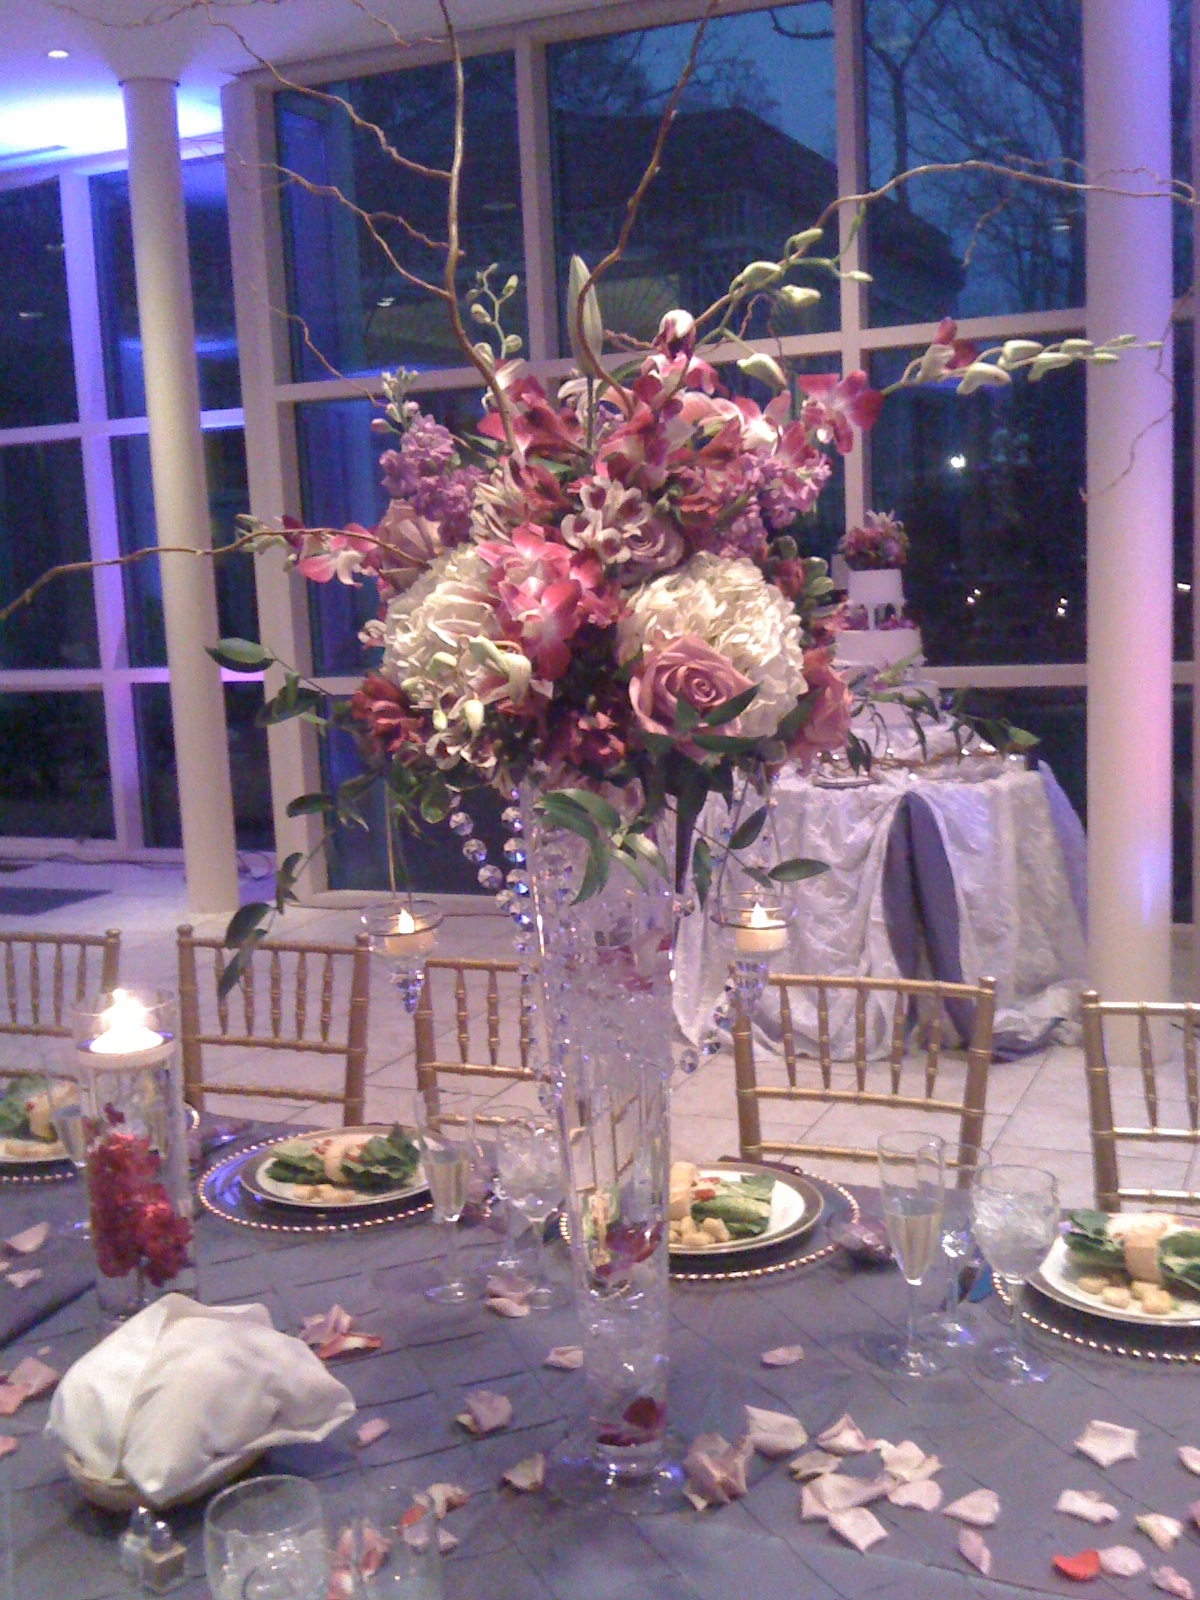 Tall purple pink centerpiece with crystals lanterns tall purple pink centerpiece with crystals lanterns reviewsmspy